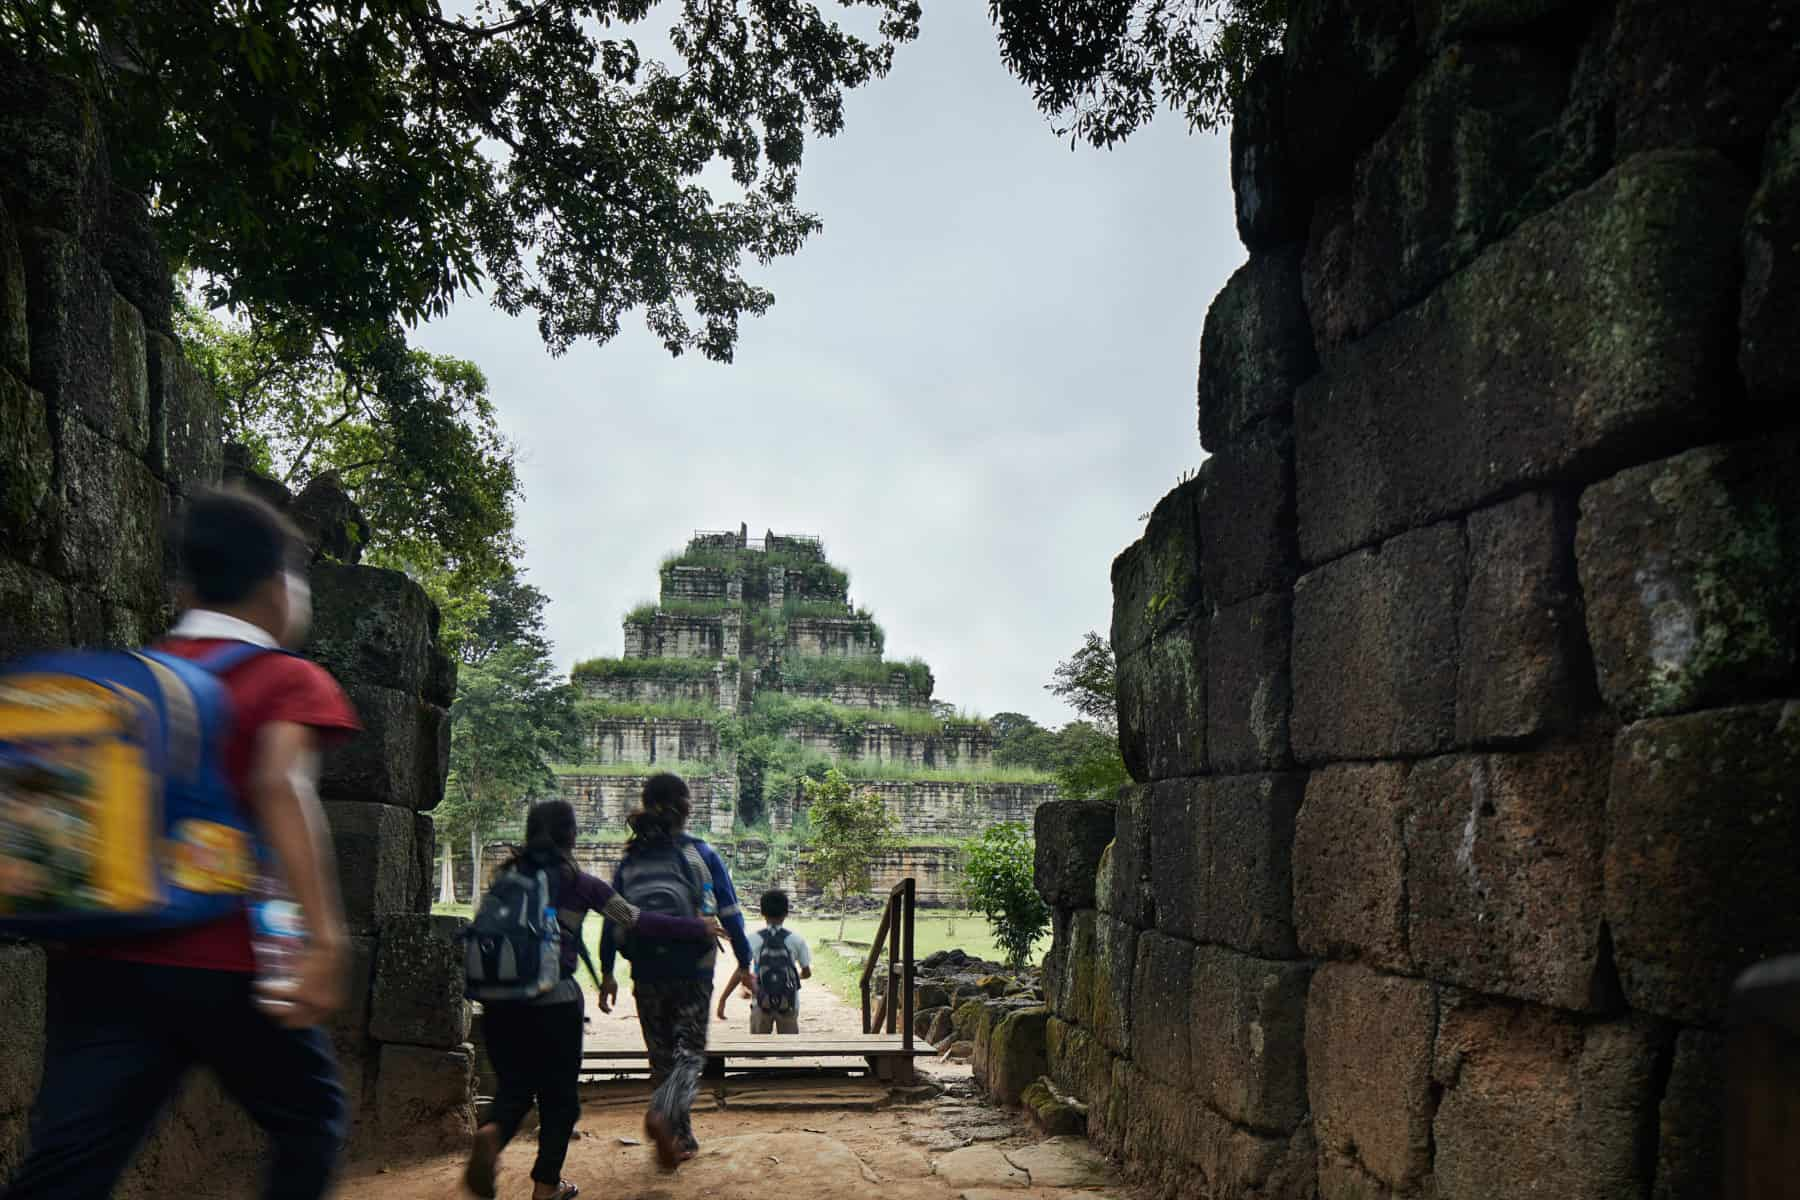 School children visiting Koh Ker temple in the vast temple of angkor complex